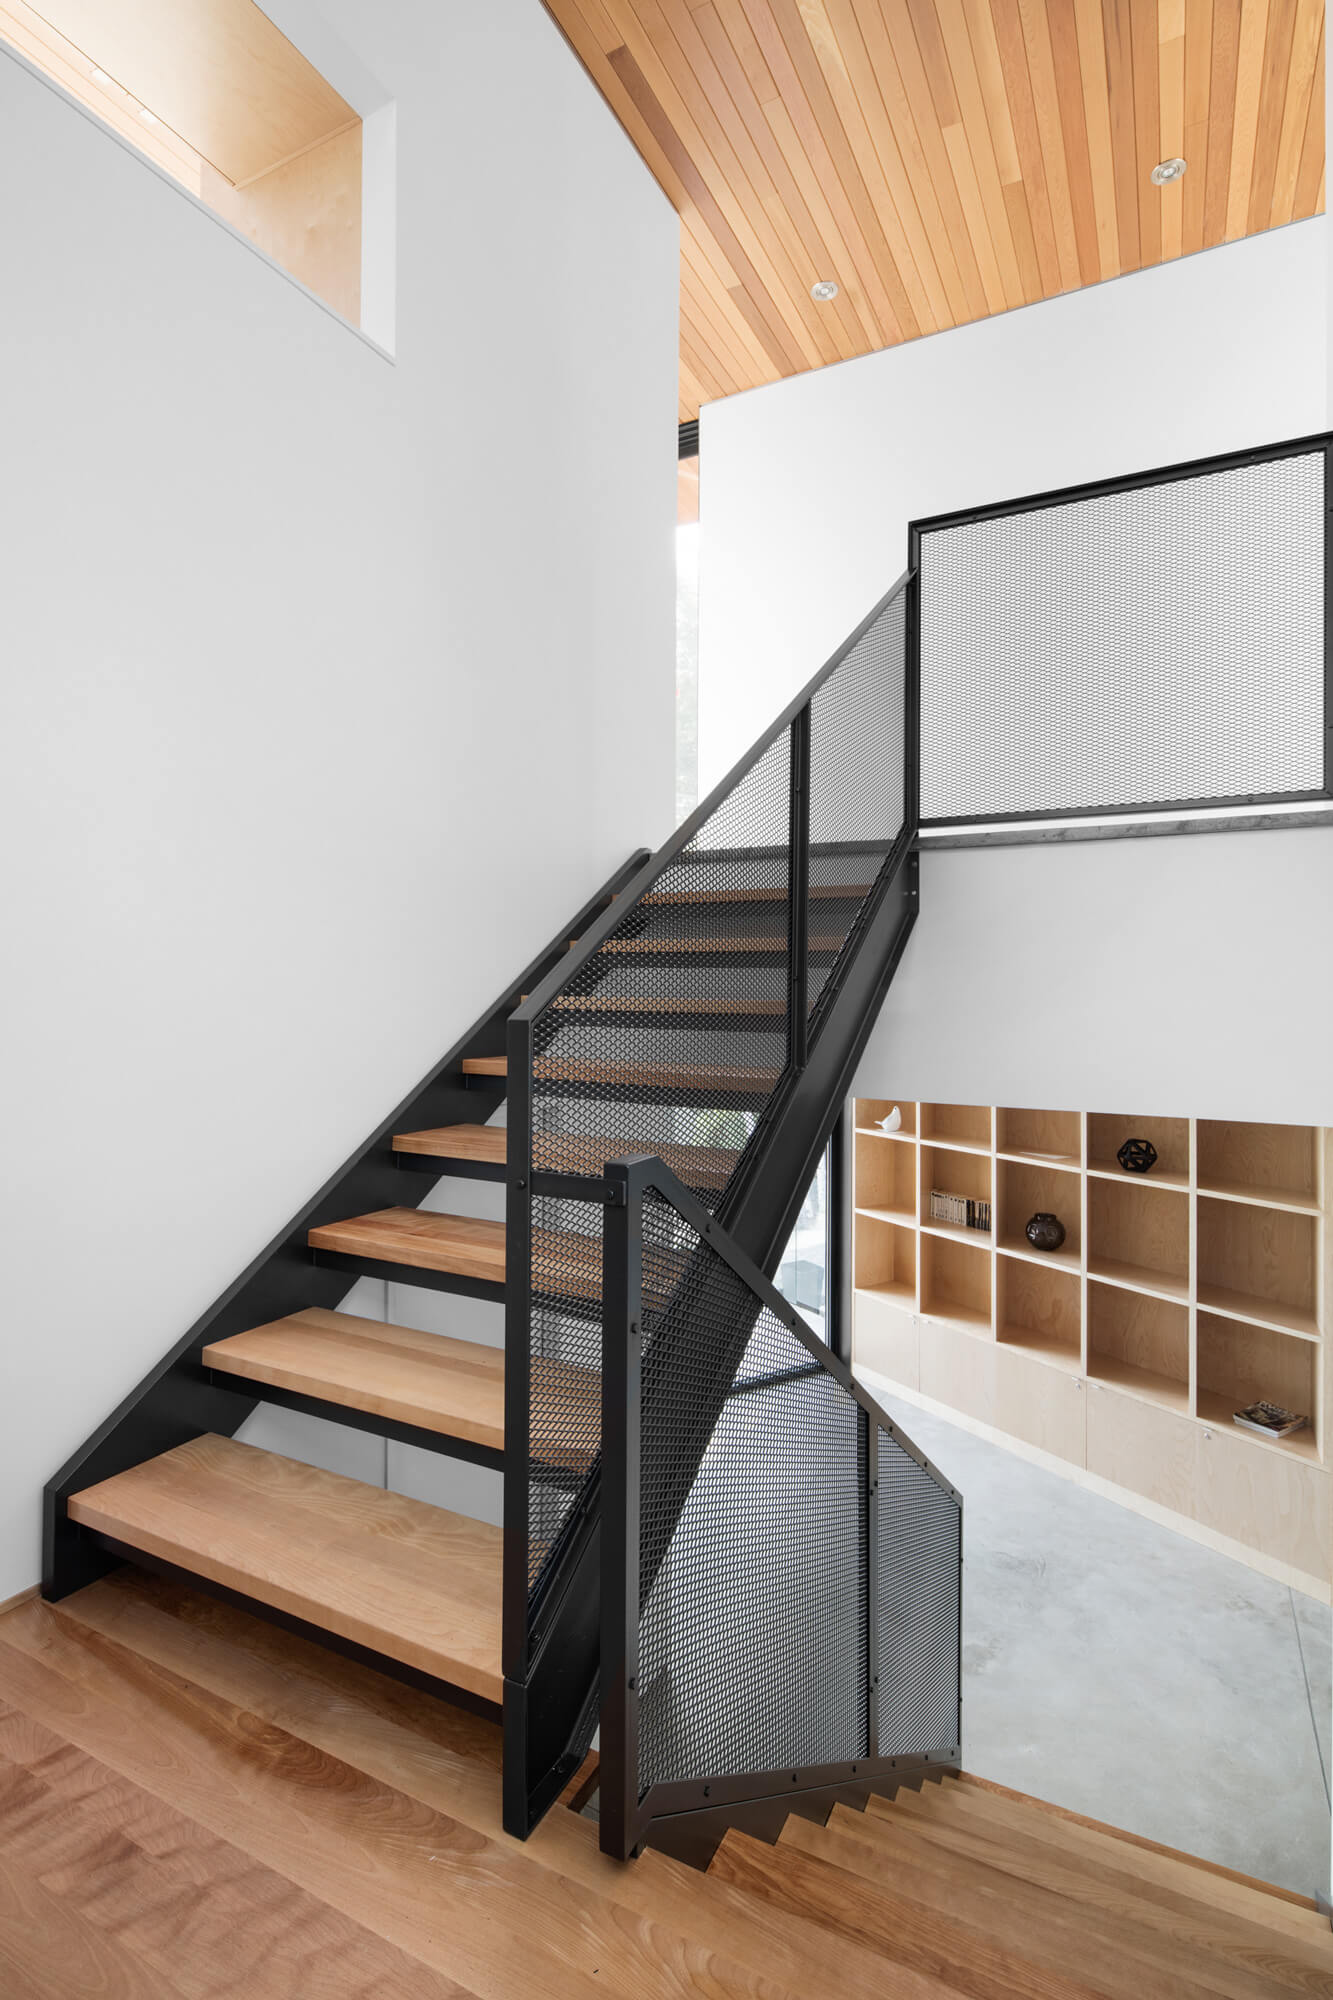 370_BOURGEOIS-LECHASSEUR-ARCHITECTES_RESIDENCE-ALTAIR_06